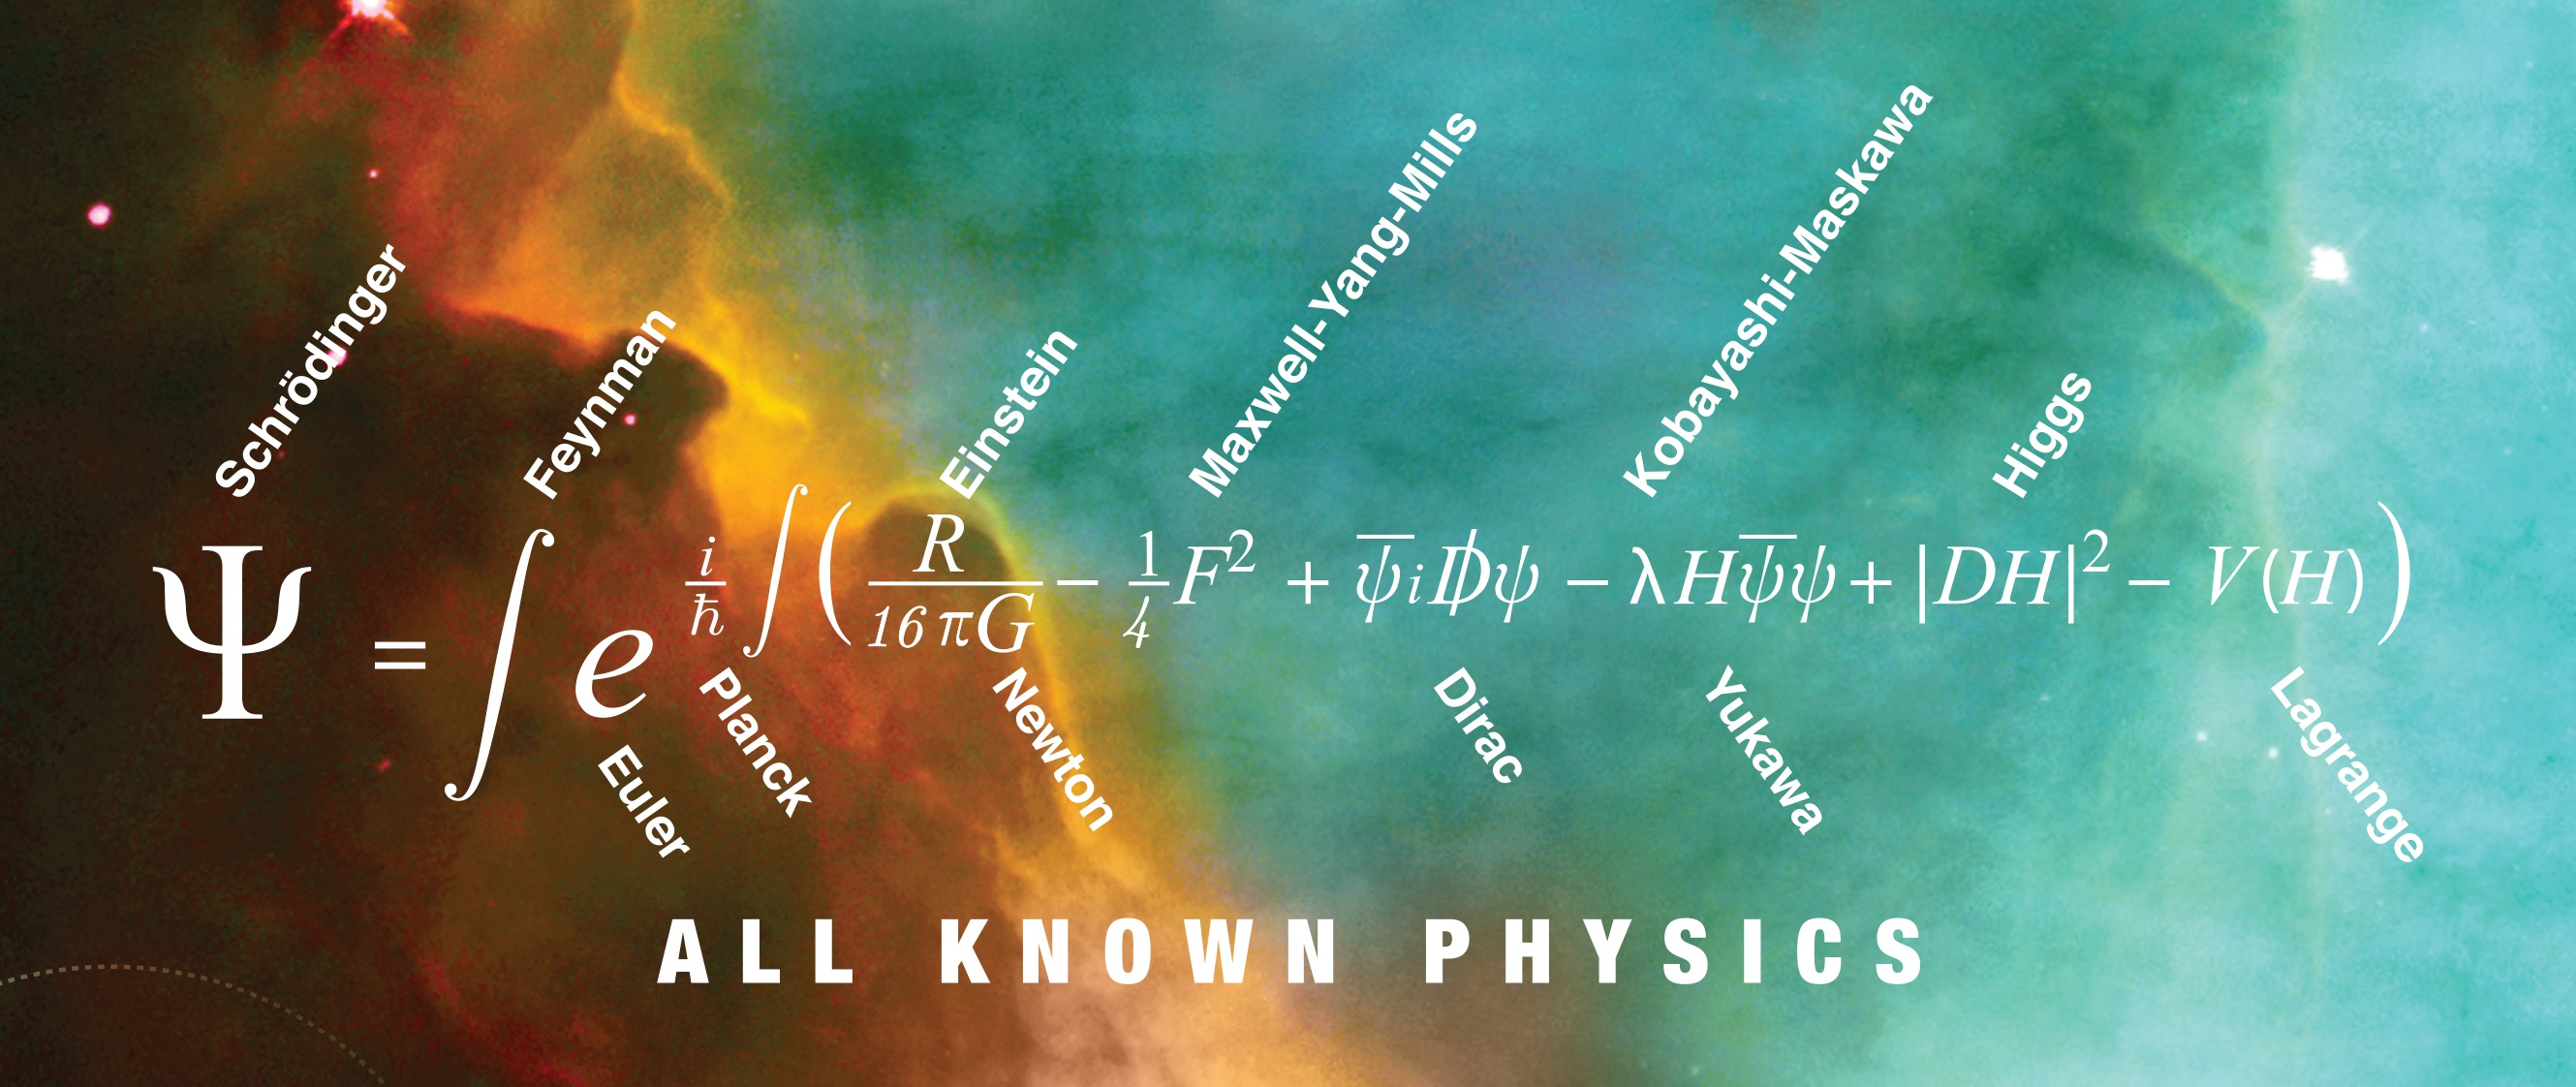 All Known Physics Poster Image